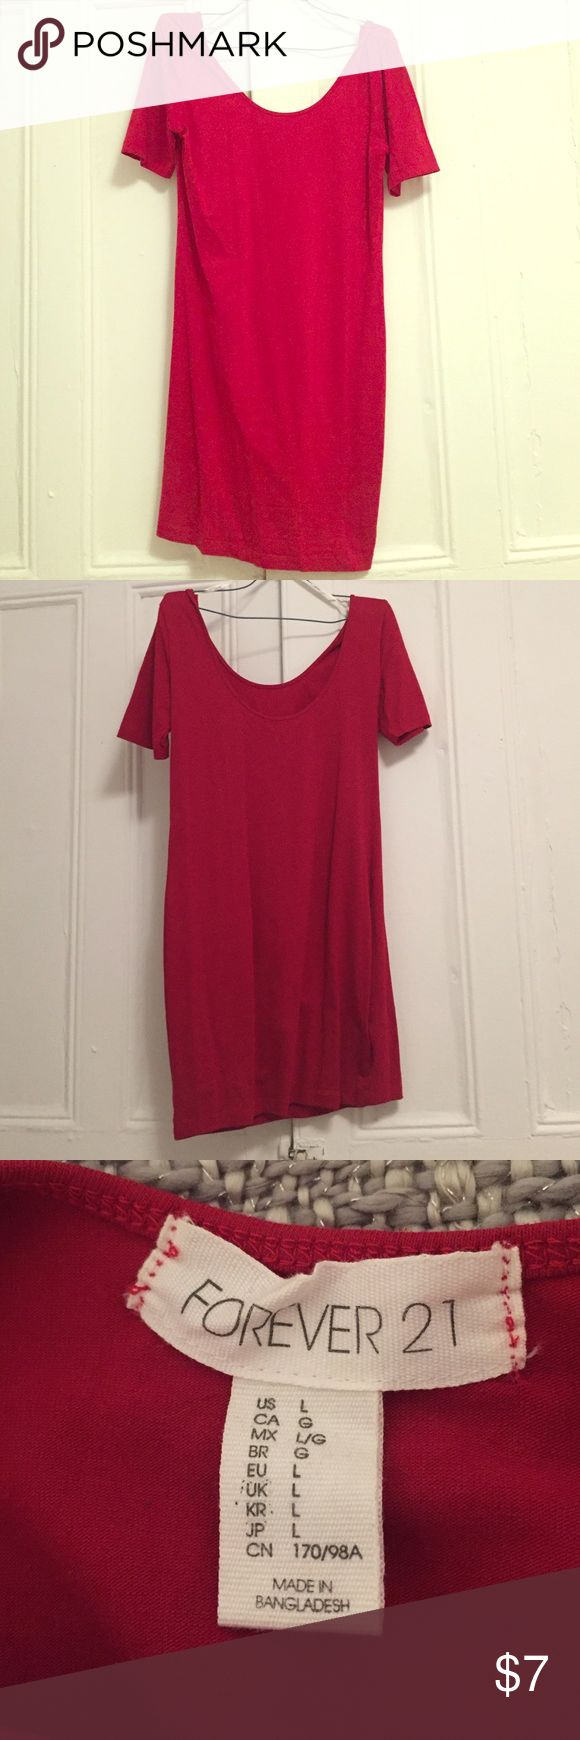 Red NWOT Forever 21 Body Con Dress w/Sleeves Cute sleeved red body con dress. I bought it for a Christmas themed pub crawl but never wore it. In perfect condition. Could fit a medium. Easily dressed up or great to stay casual in. Great for a devil Halloween costume.  I'm a fast shipper! Forever 21 Dresses Mini